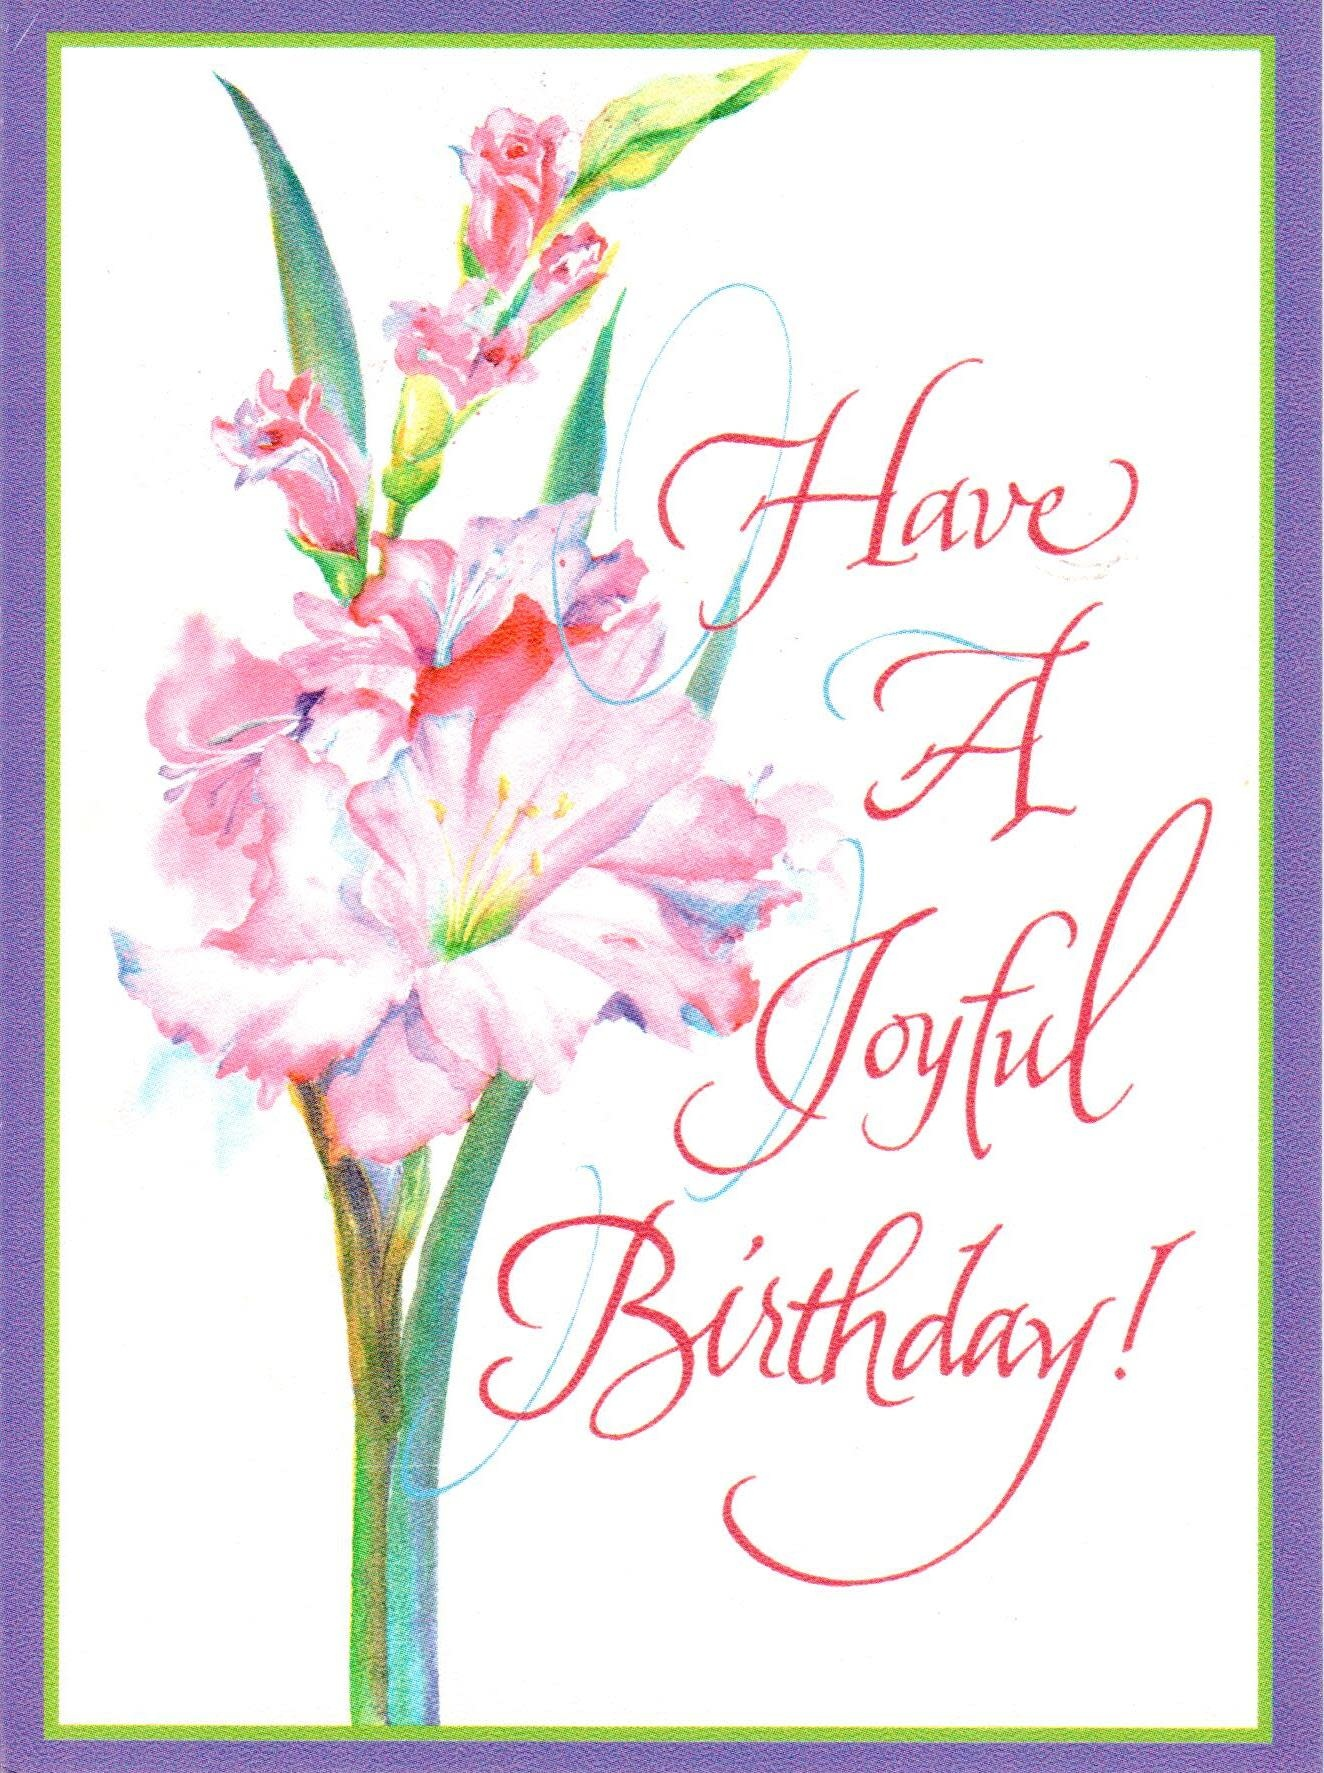 Have a Joyful Birthday!